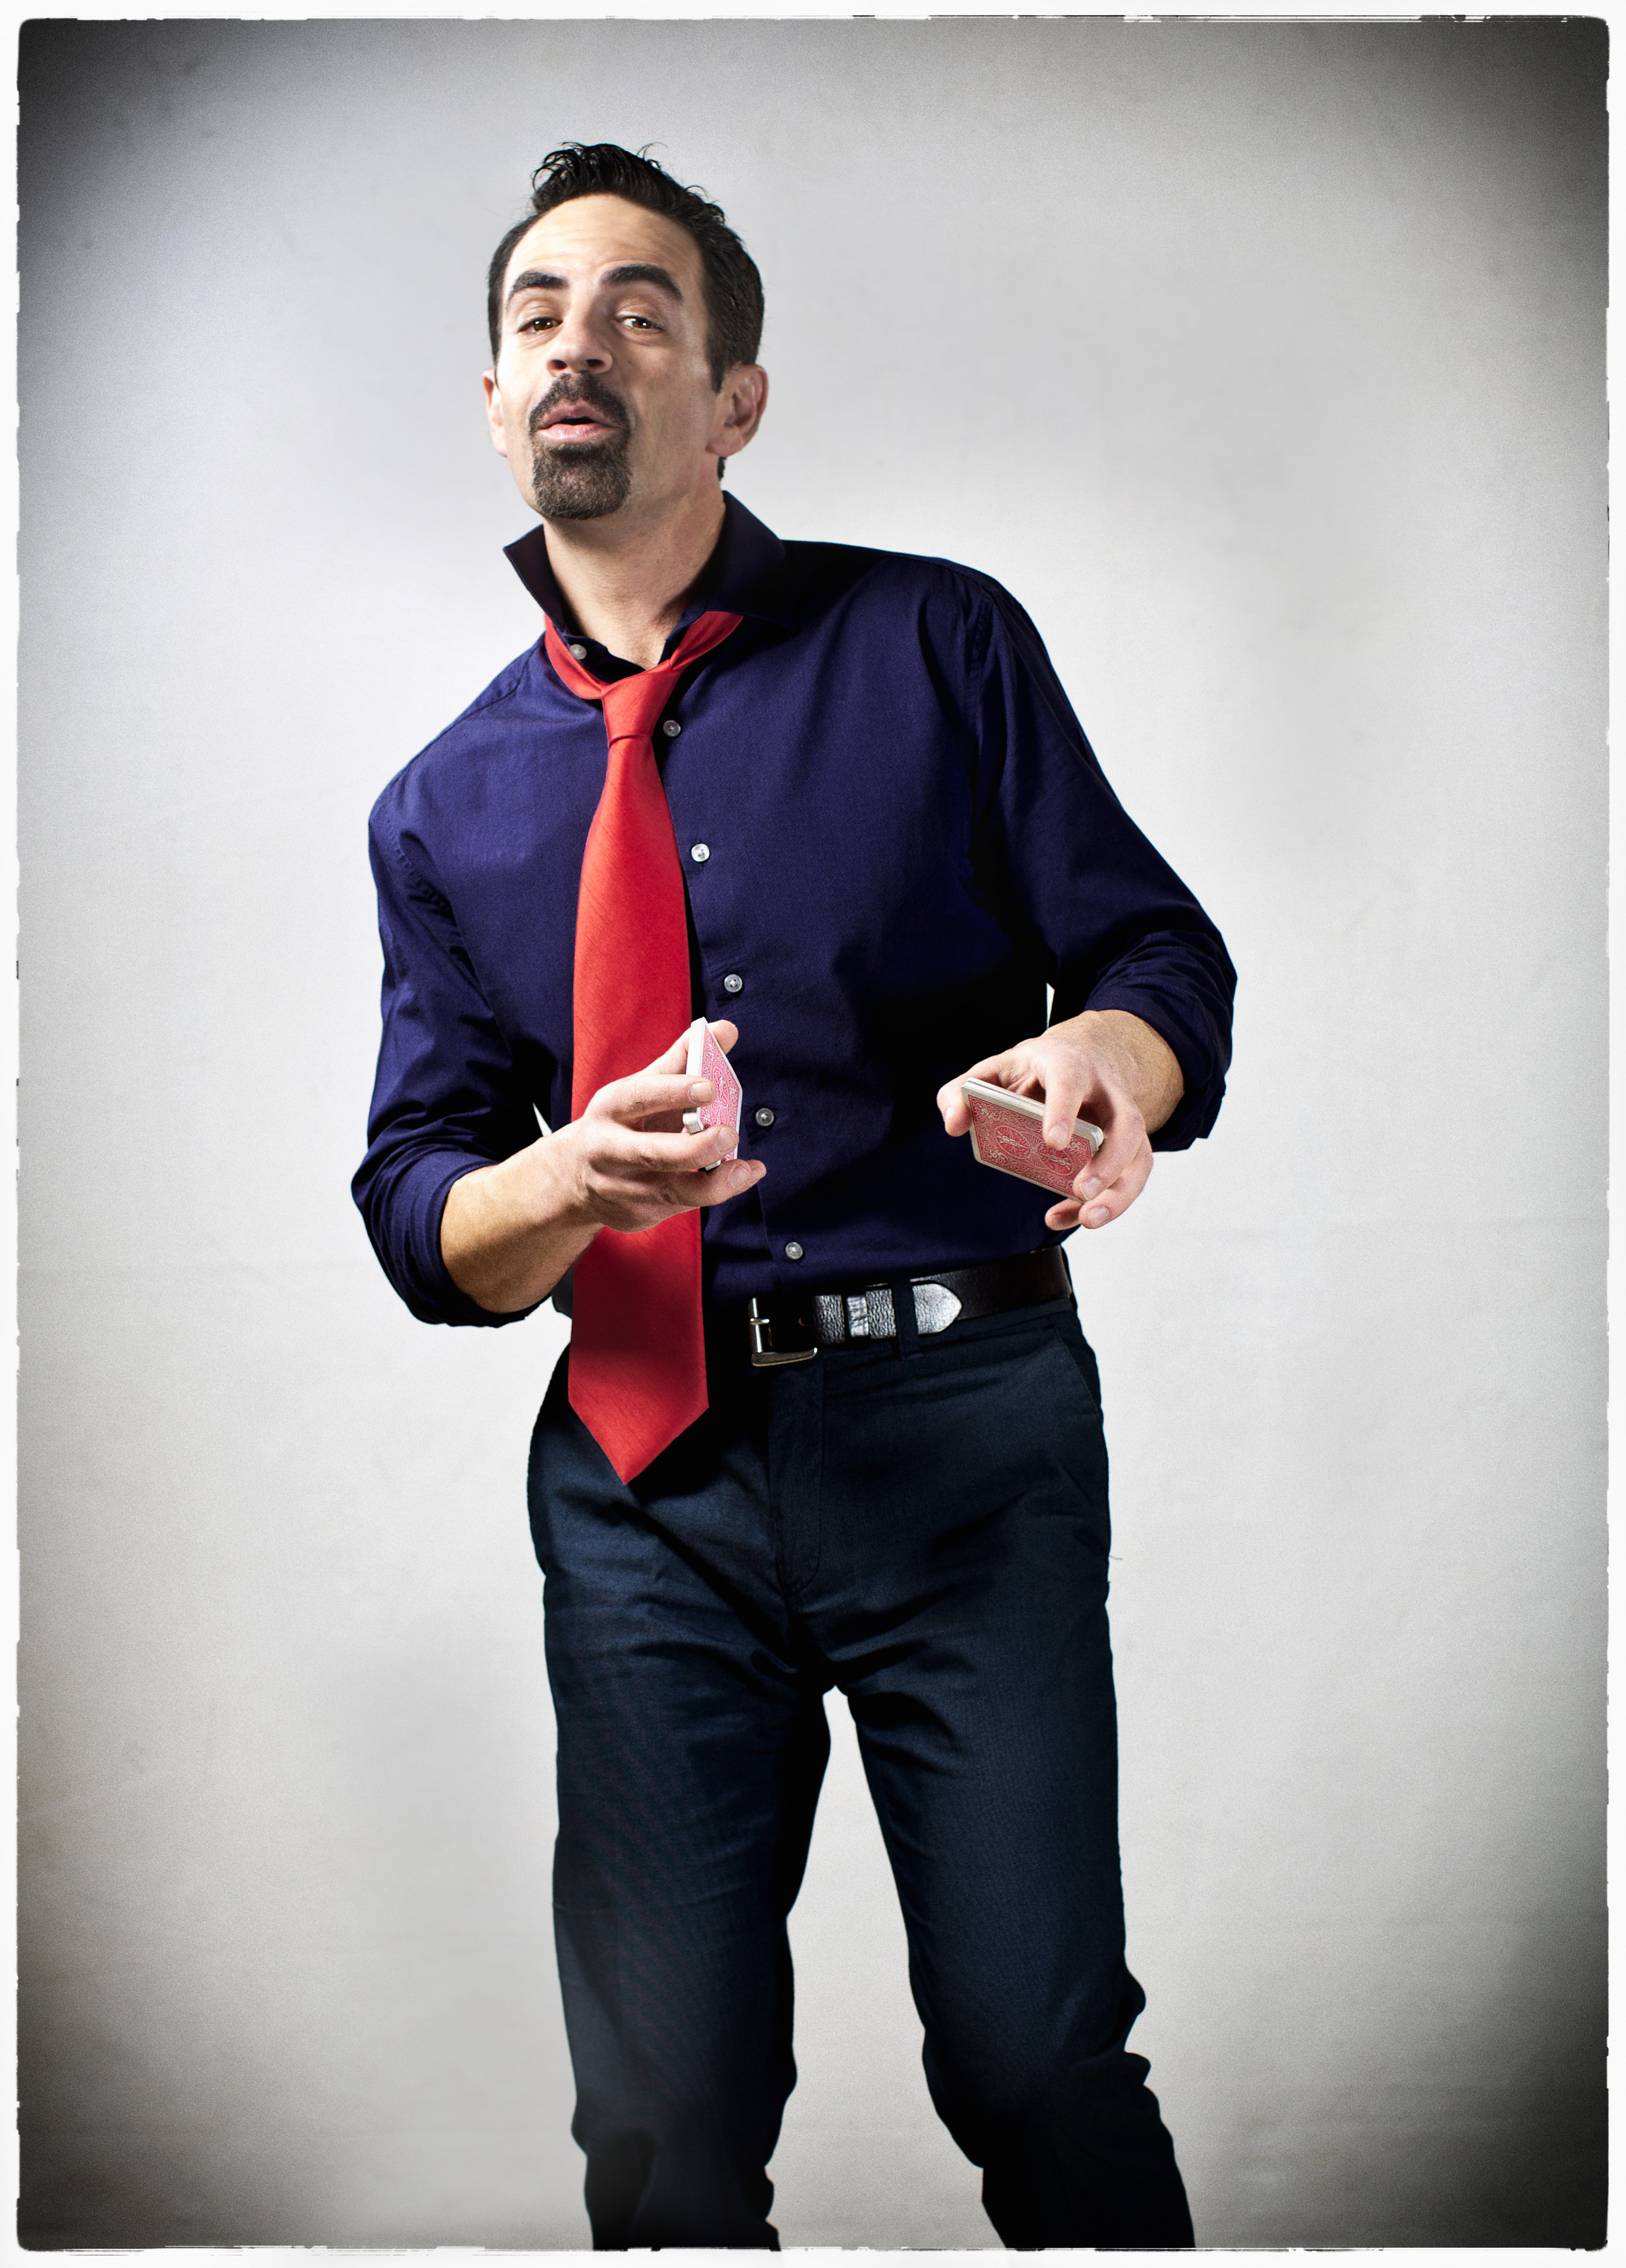 Learn more about Joshua Lozoff's Life Is Magic show at   www.joshualozoff.com